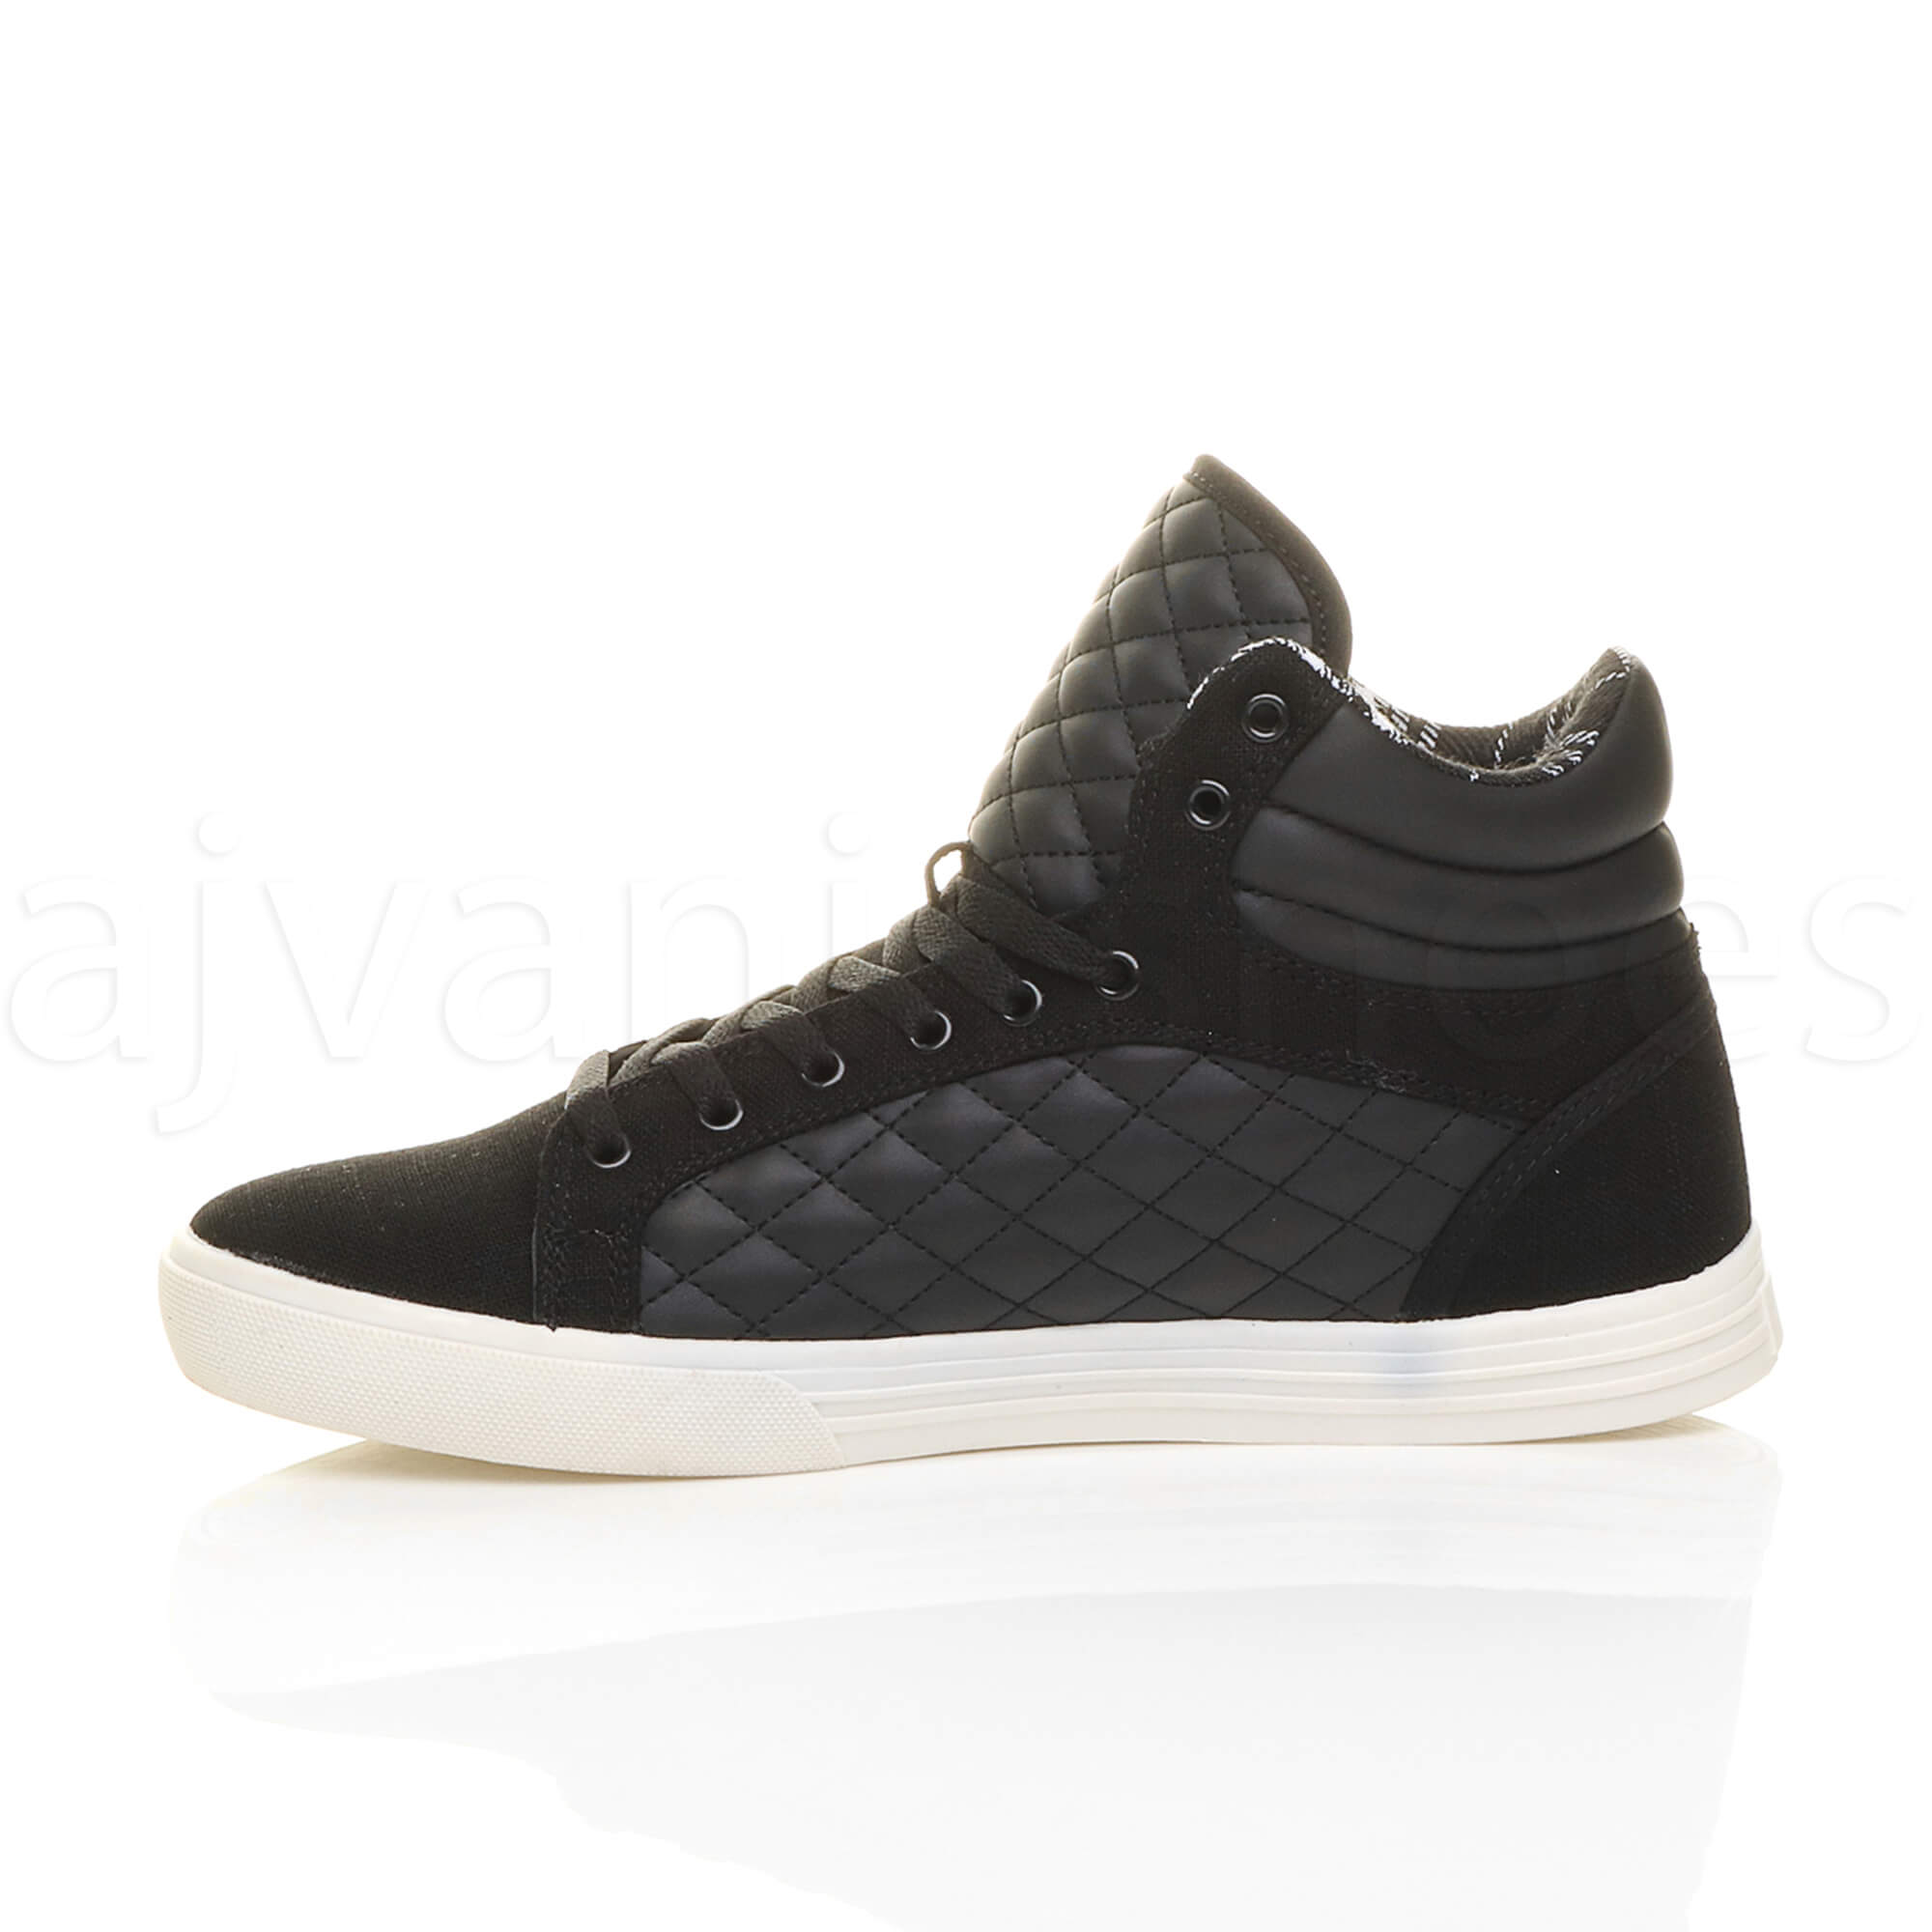 MENS-QUILTED-LACE-UP-FLAT-CASUAL-HI-HIGH-TOP-TRAINERS-SHOES-ANKLE-BOOTS-SIZE thumbnail 4